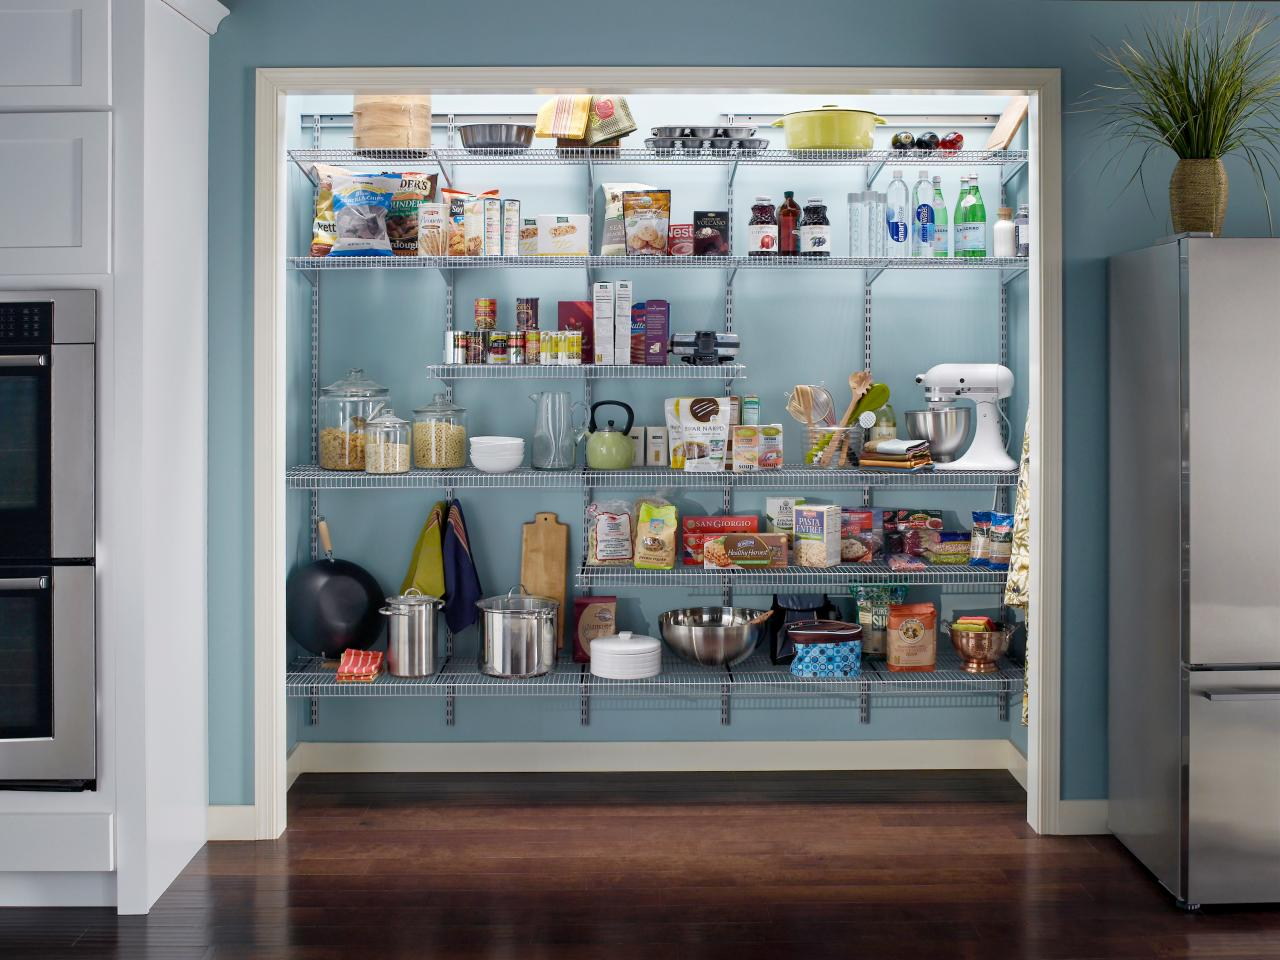 Adjustable wire shelving is an inexpensive product for customizing your pantry space